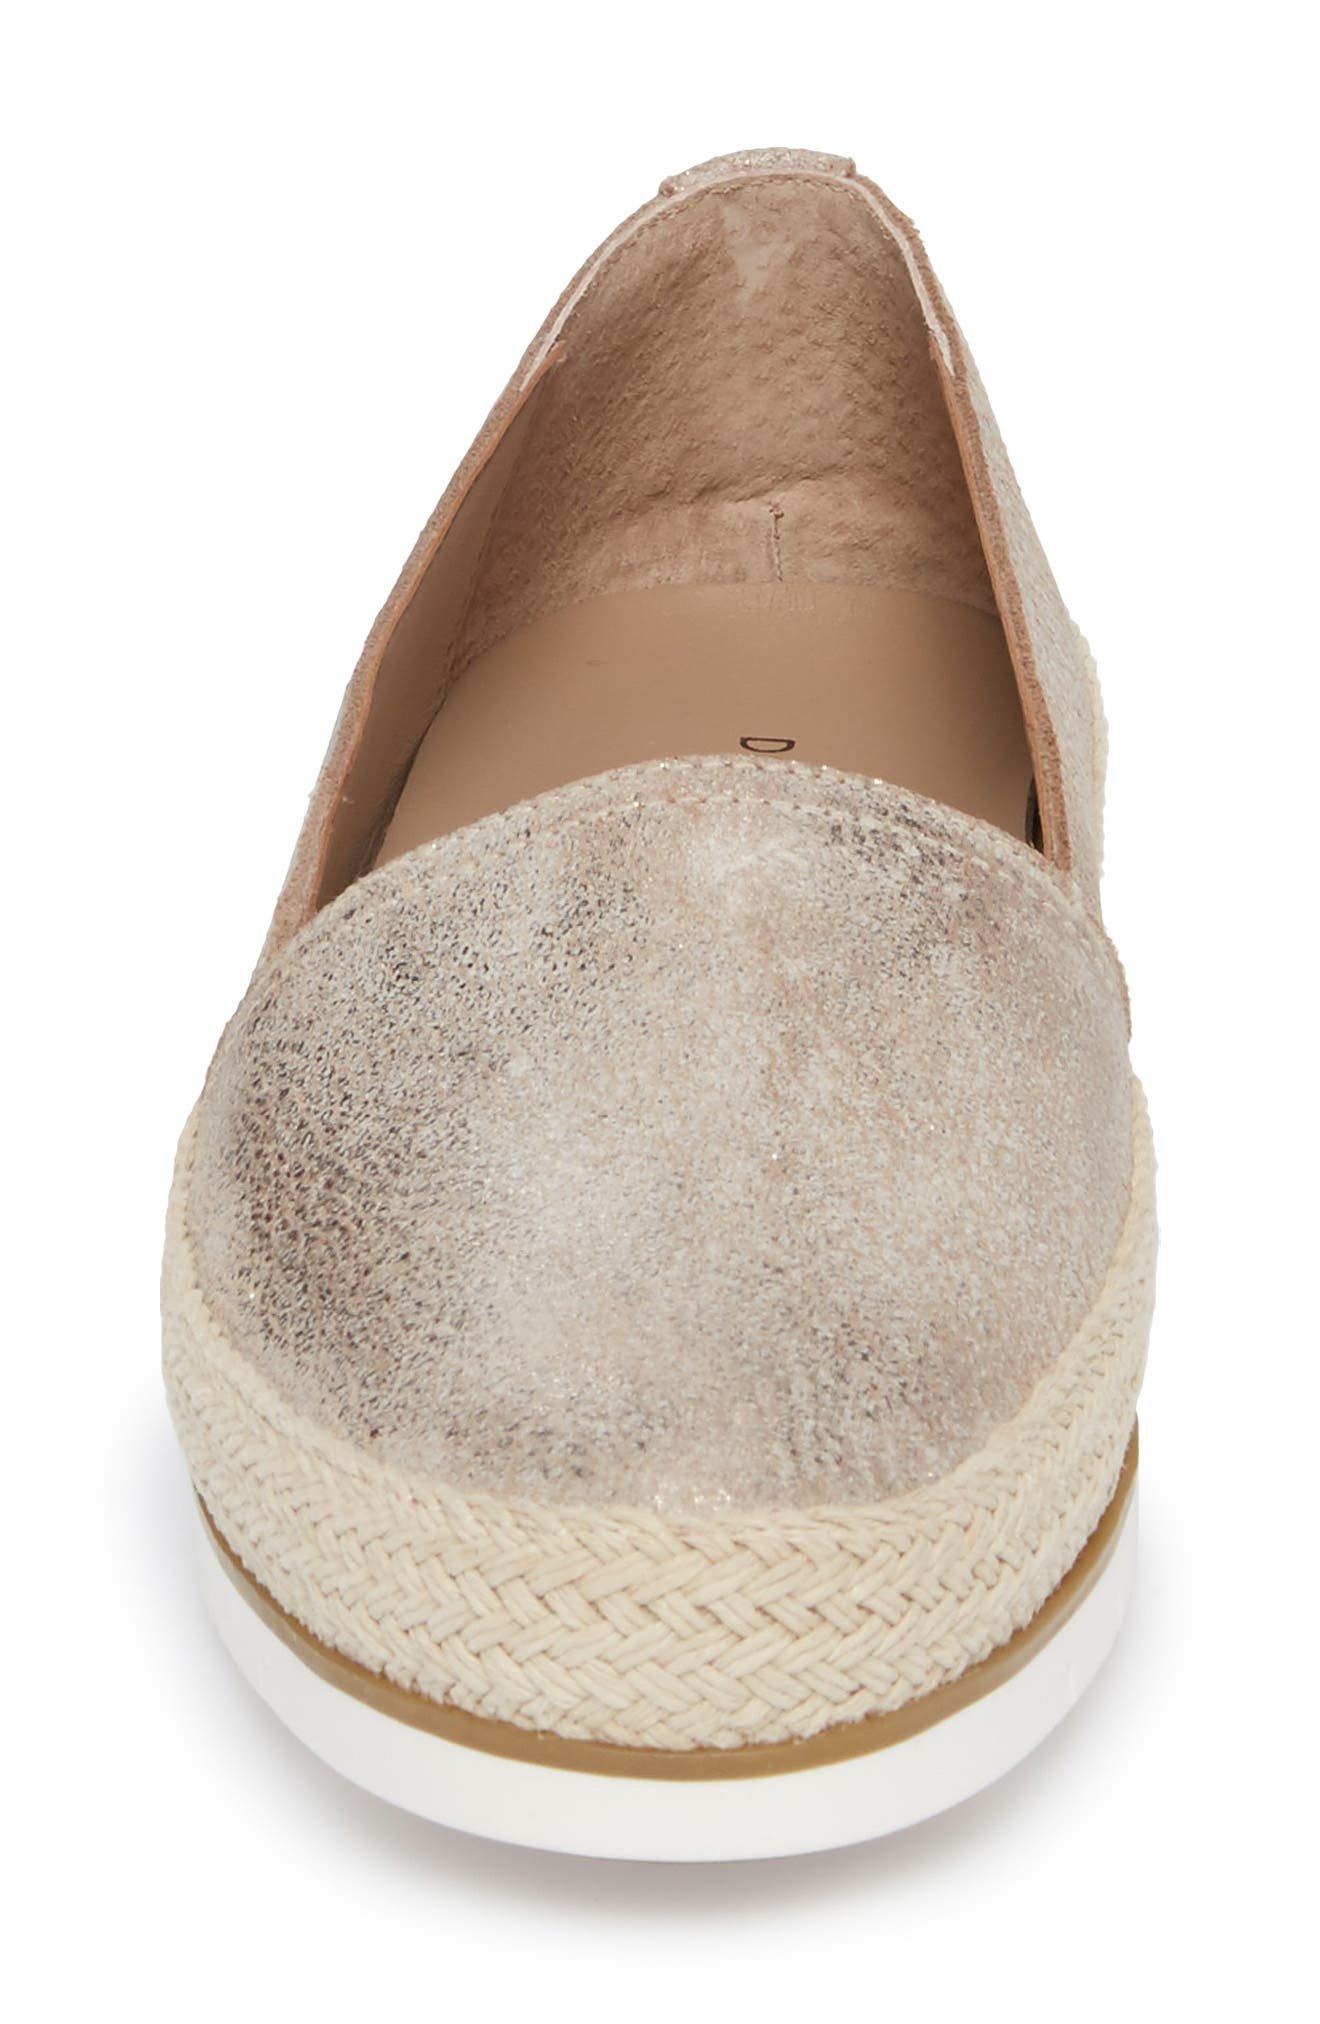 Palm Slip-On Sneaker,                             Alternate thumbnail 4, color,                             Taupe Fabric